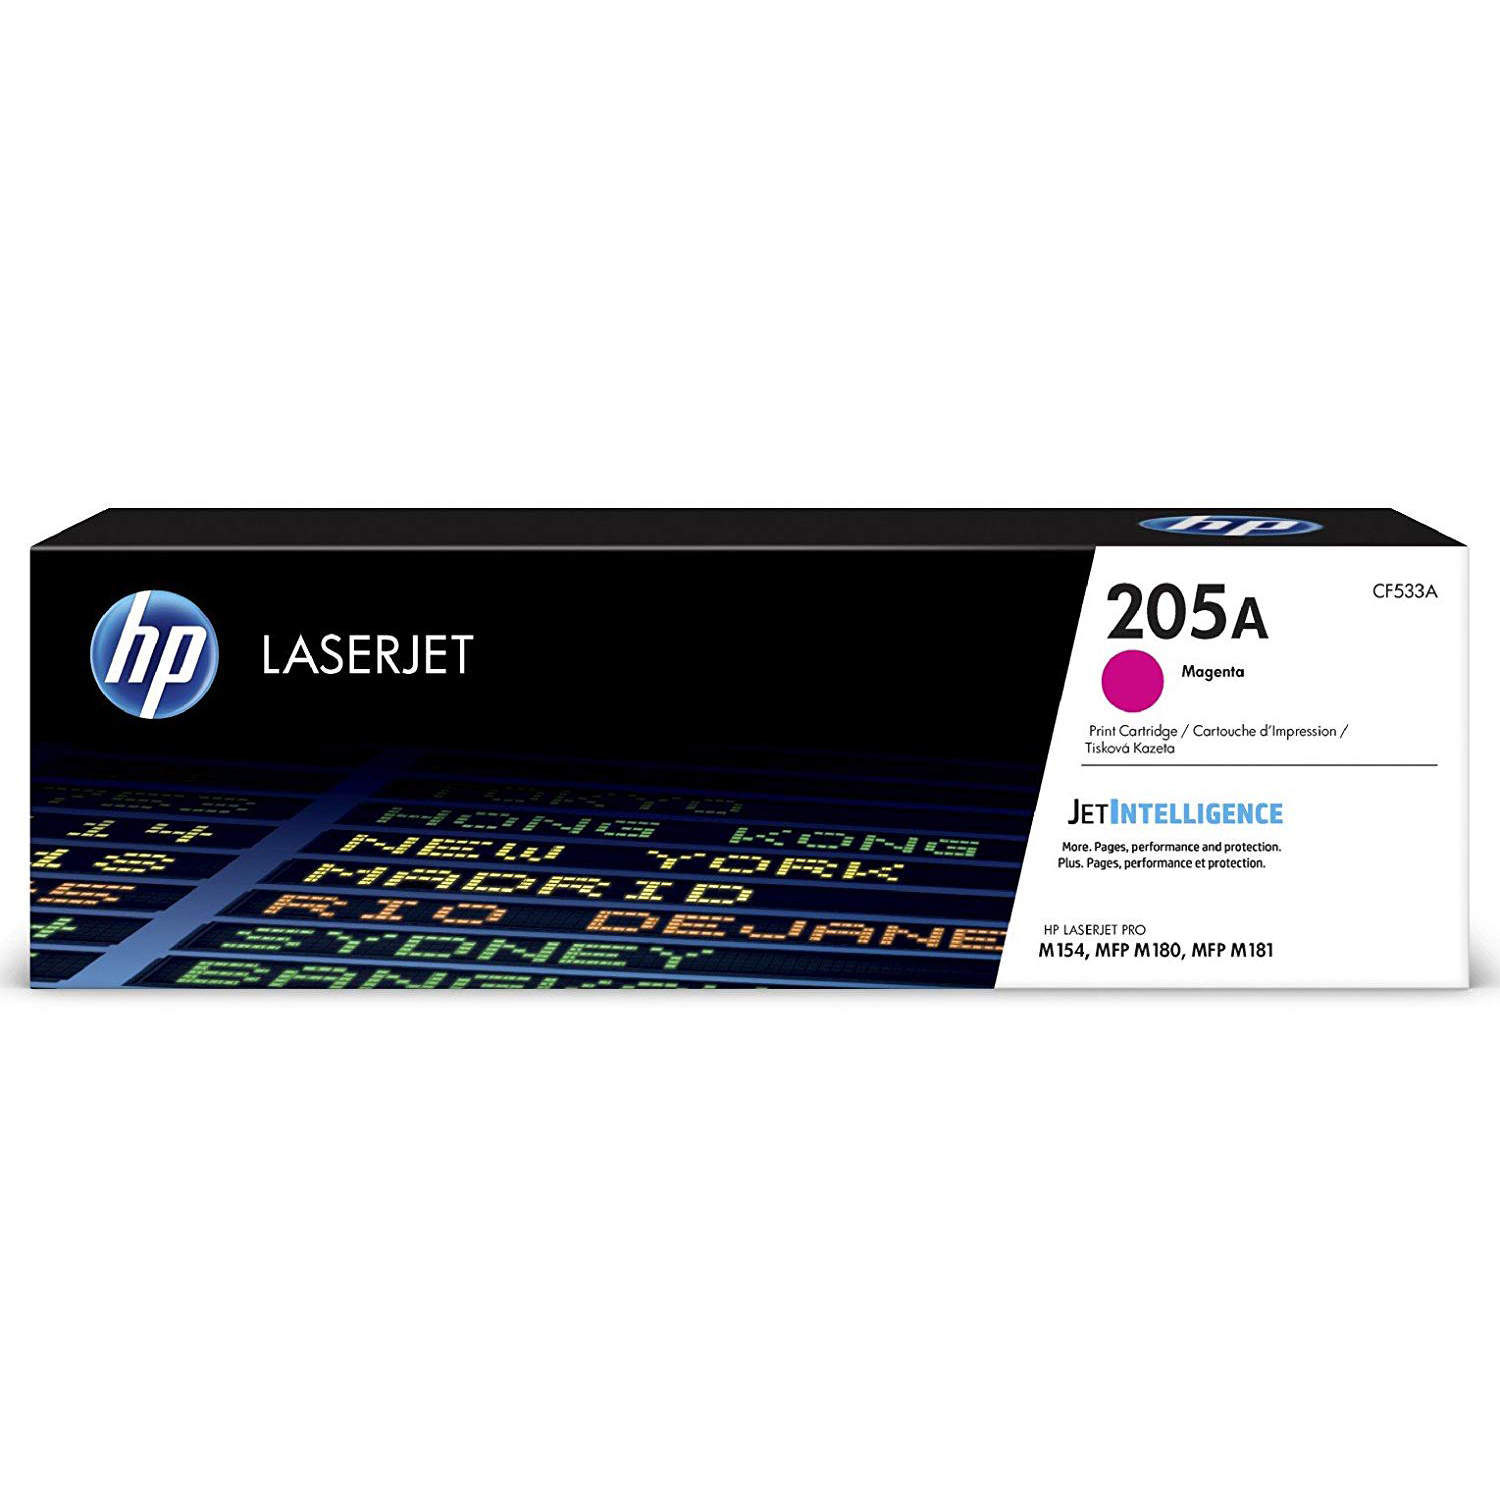 HP 205A (CF533A) Toner Cartridge - Magenta